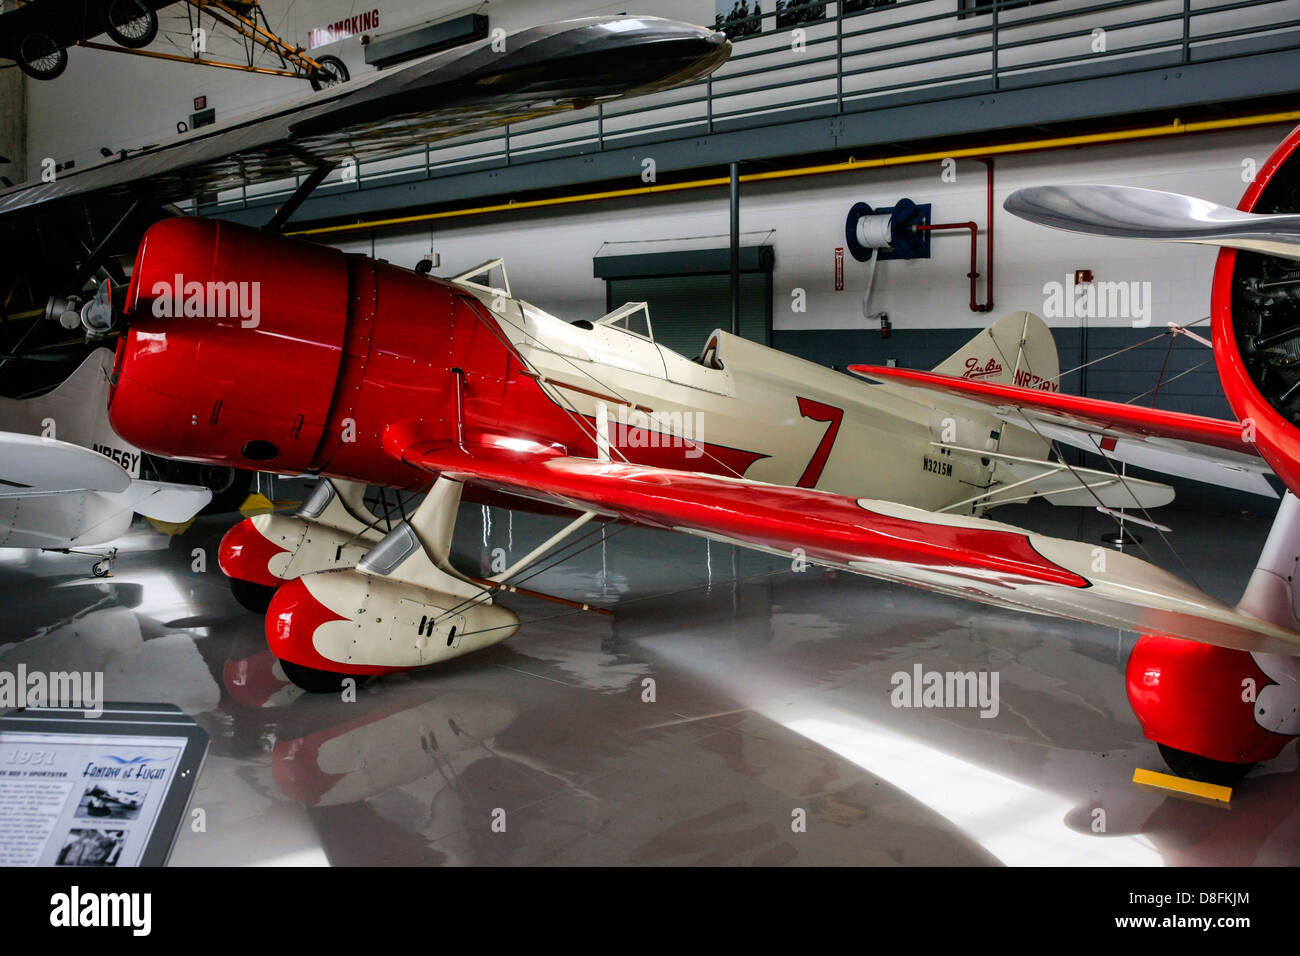 1931 Gee Bee Y Sportster aircraft on display at the Fantasy of Flight Museum, Polk City FL - Stock Image